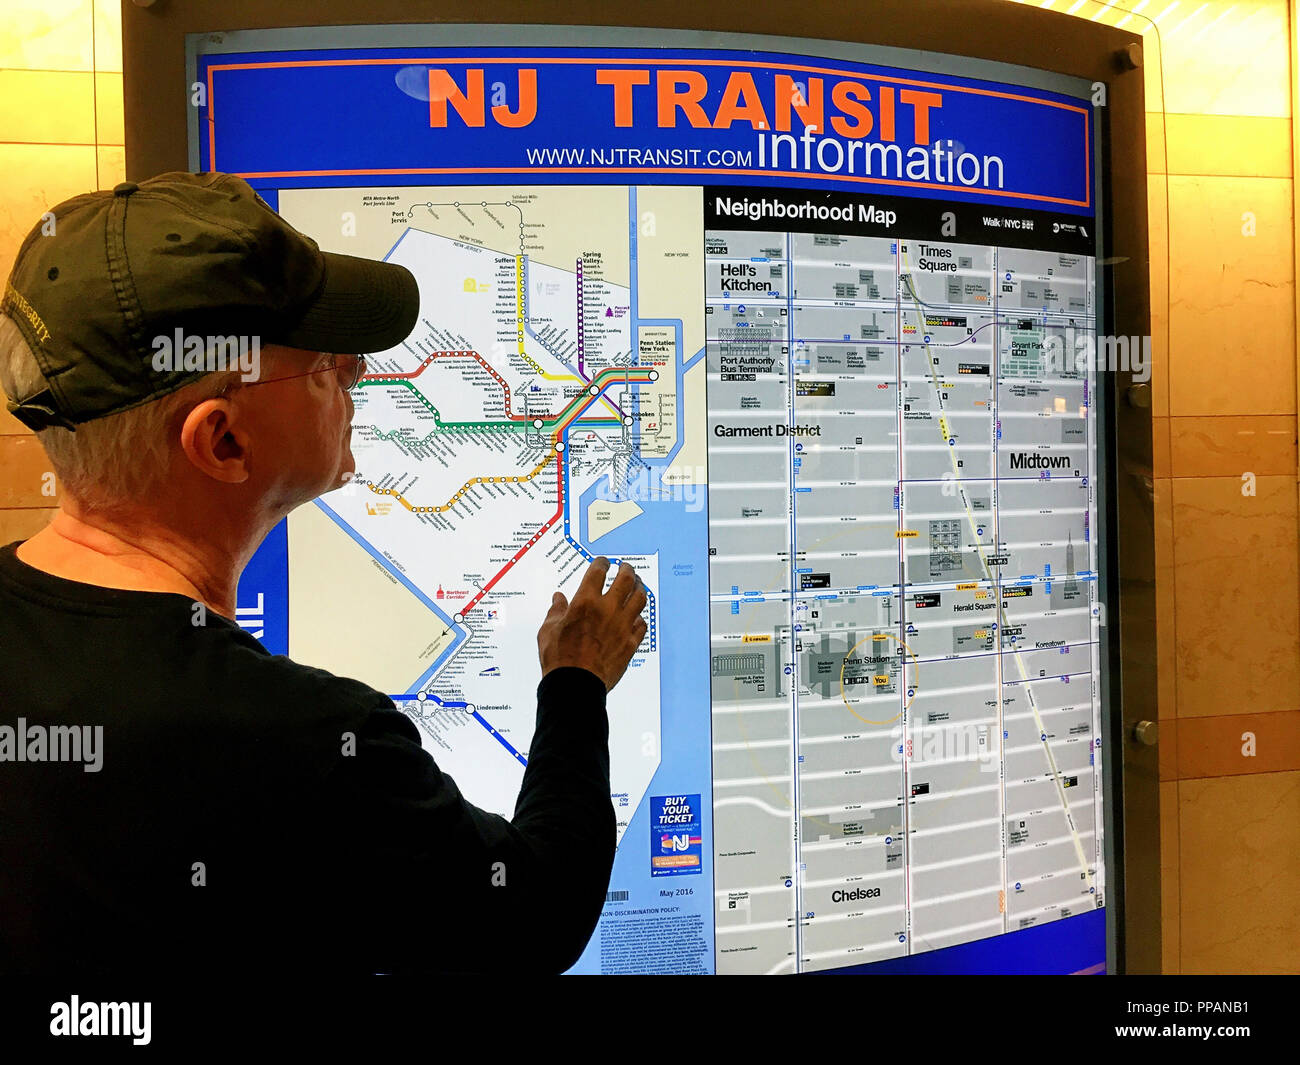 New Jersey Transit Map, Penn Station, NYC Stock Photo: 220283141 - Alamy